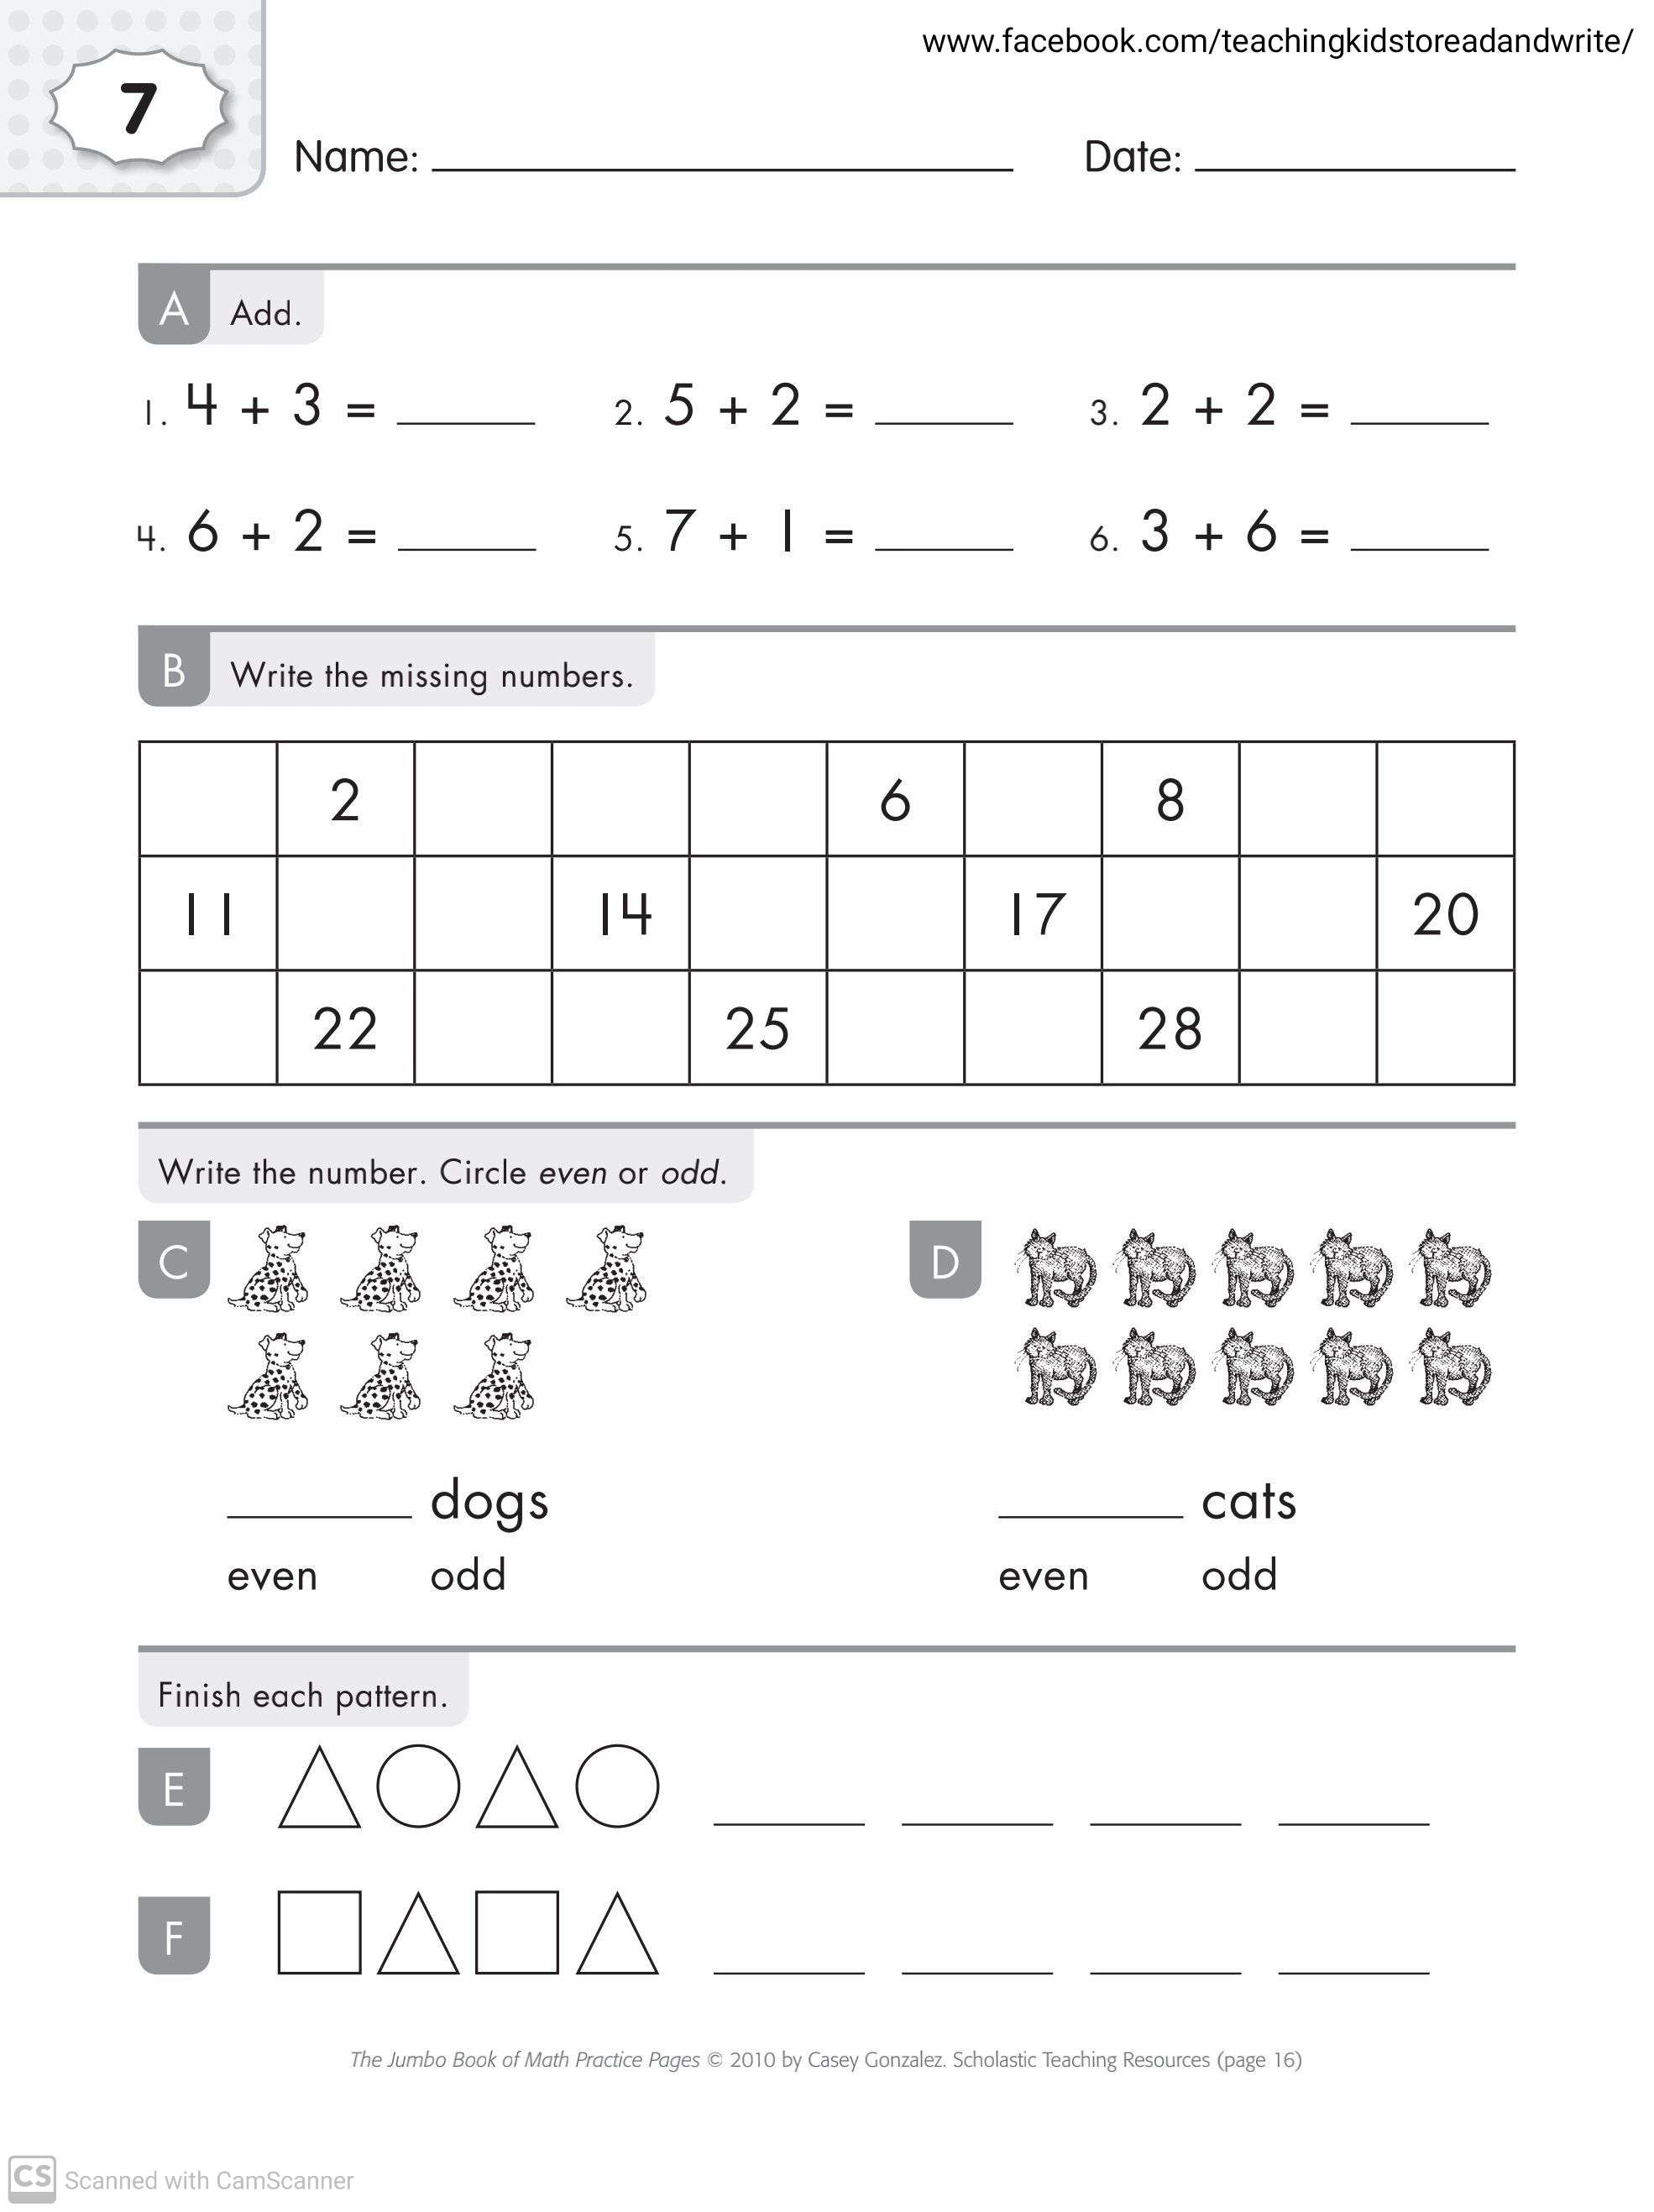 Maths Worksheets For Grade 1 With Answers Teaching Kids